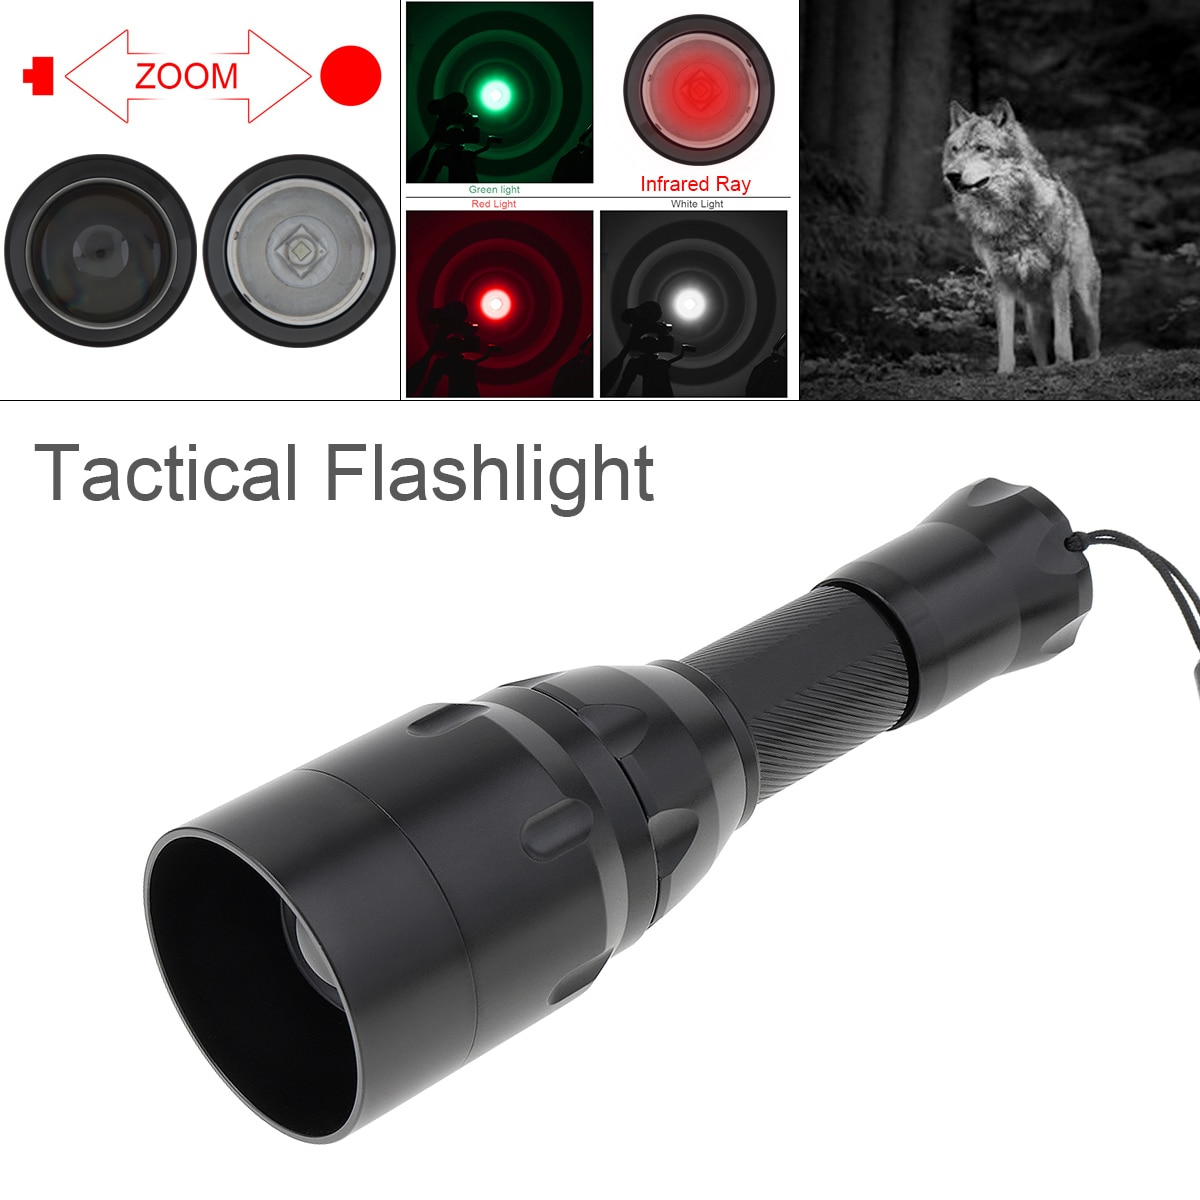 SecurityIng Tactical Hunting Flashlight 1500Lumen Rifle Lantern Portable C16 Zoomable White Green Red Infrared Light for